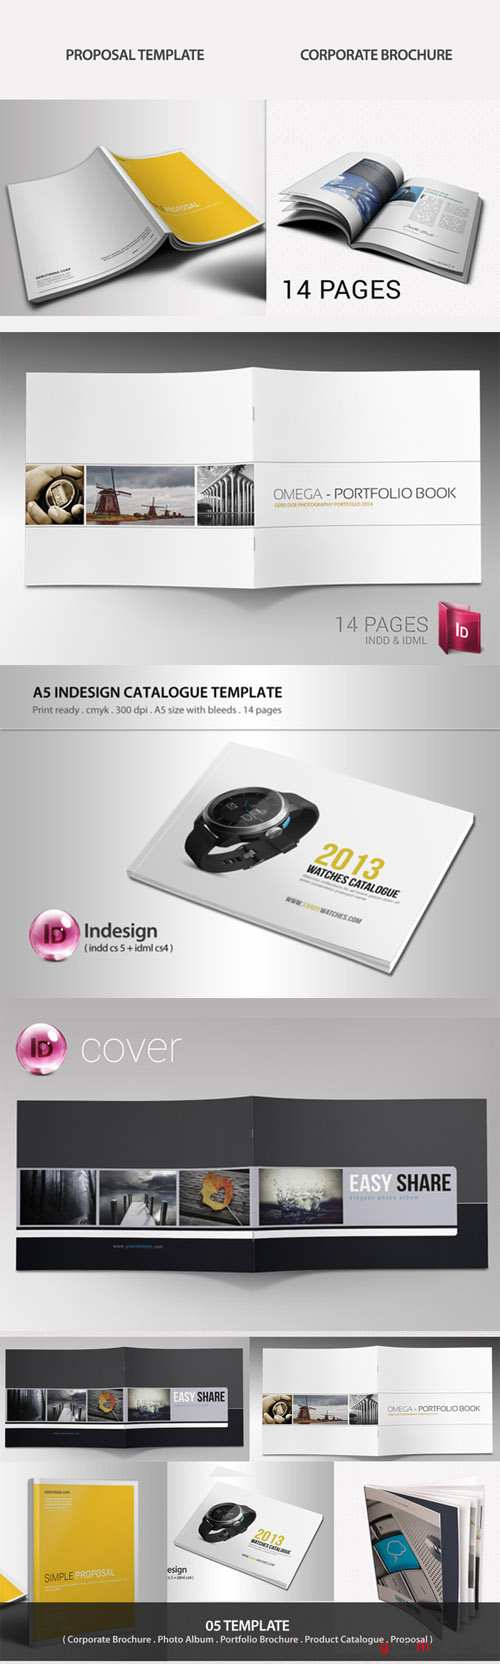 Indesign Brochure Bundle